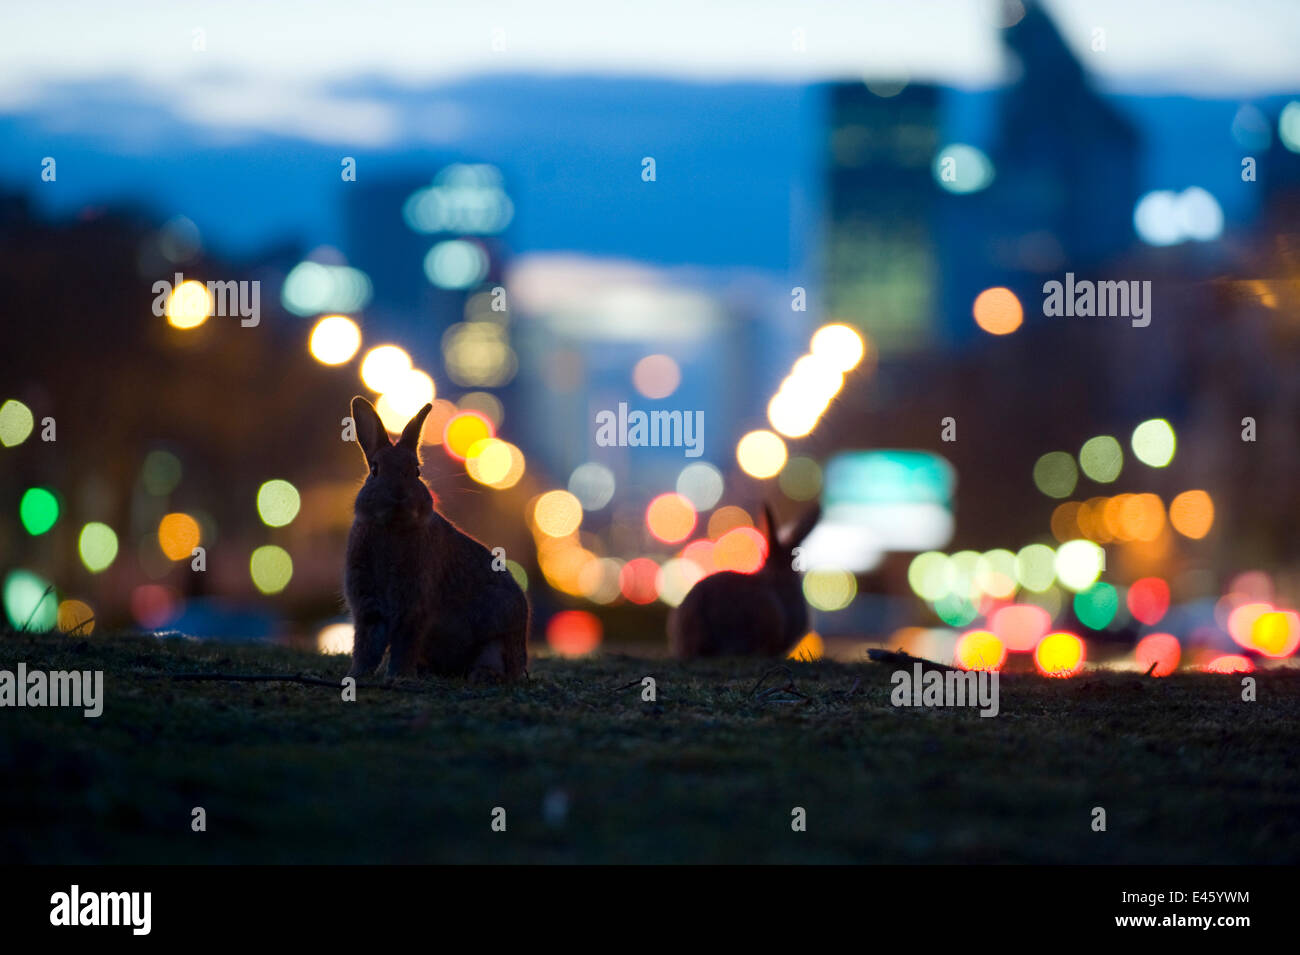 Rabbits (Oryctolagus cuniculus) in a Paris park at dusk. France. - Stock Image